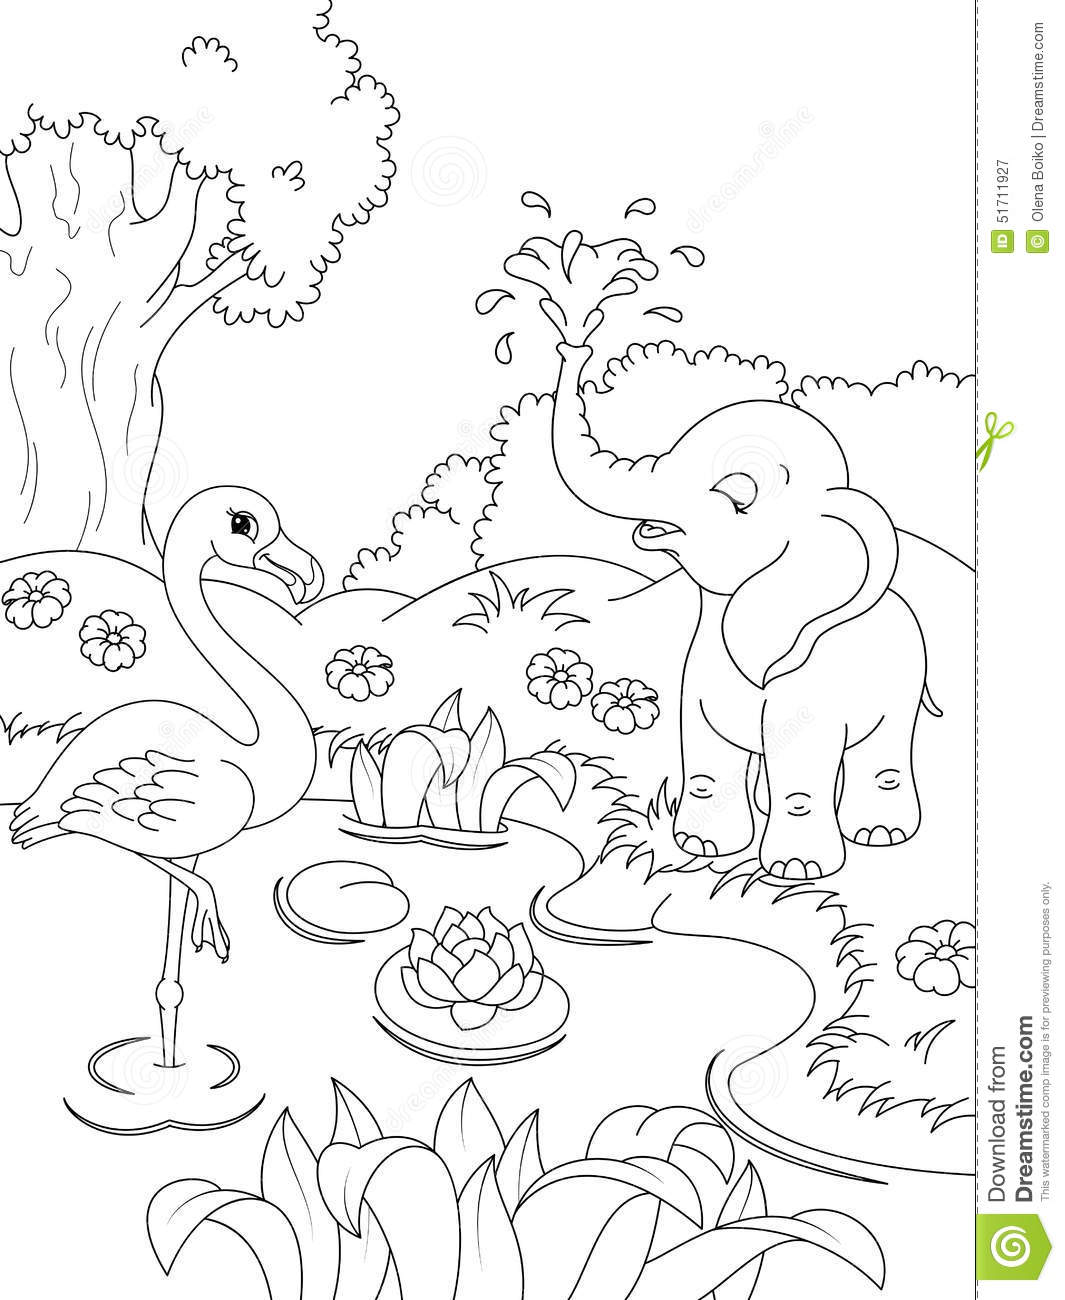 Animals Coloring Page Stock Vector Illustration Of Page